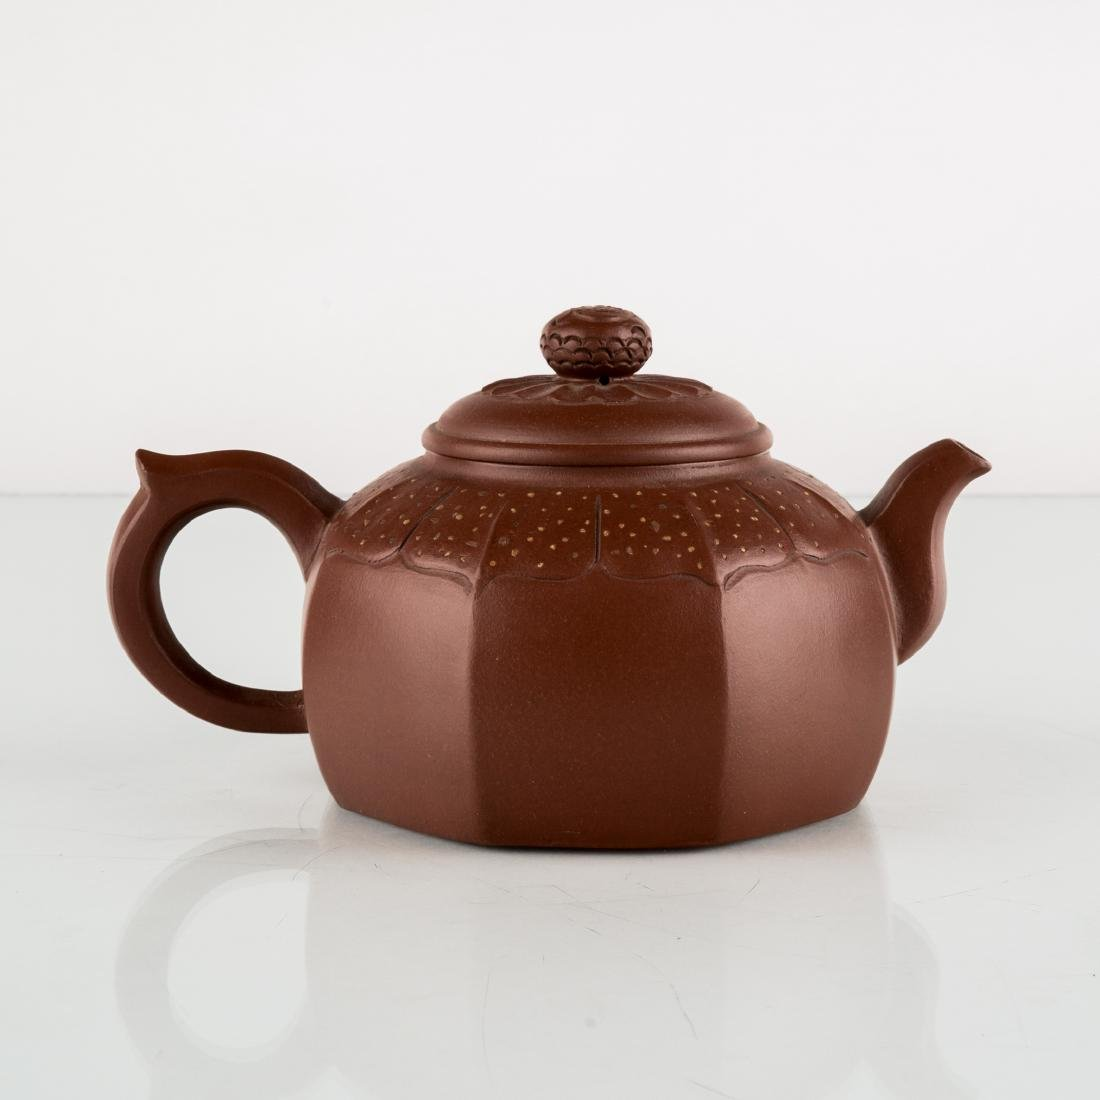 CHINESE HEXAGONAL ZISHA (YIXING) TEAPOT